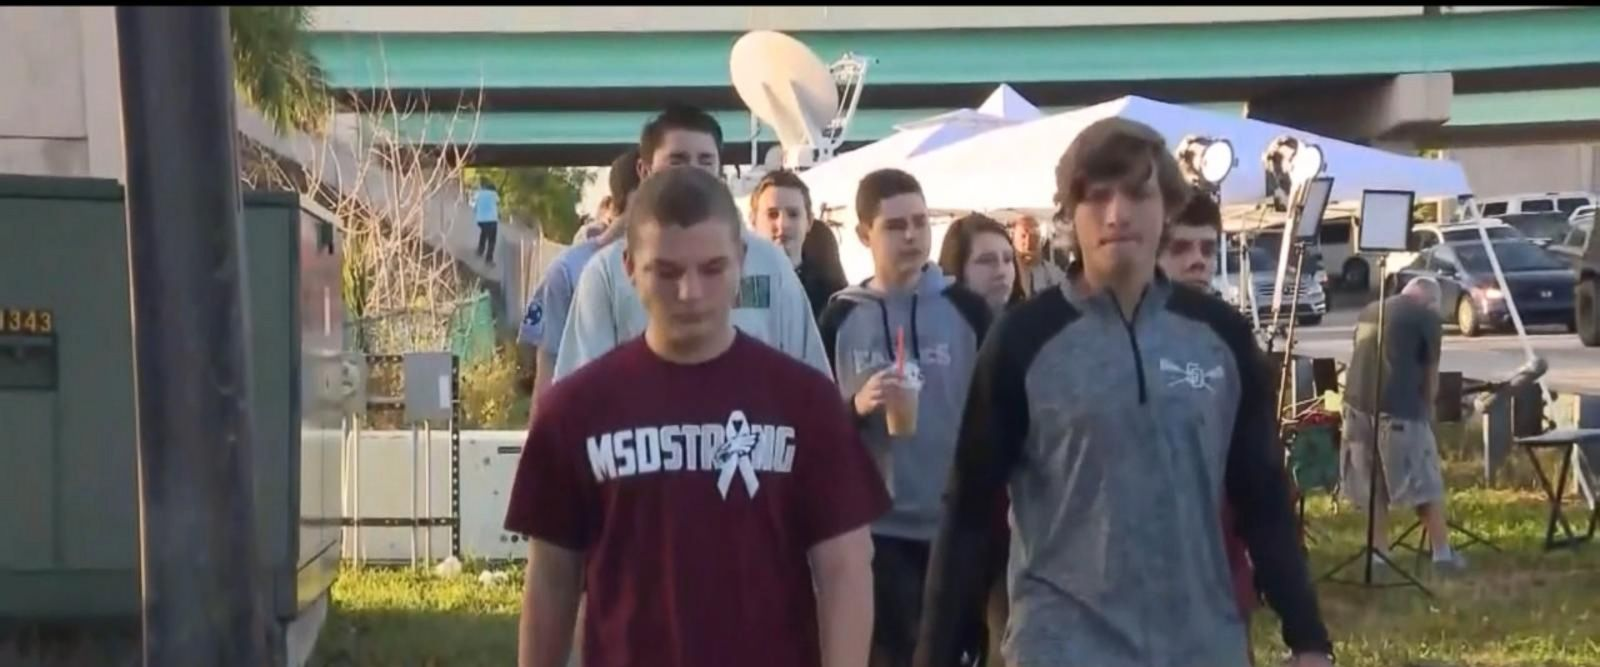 VIDEO: When Marjory Stoneman Douglas High School students return from next week's spring break, they will be required to use only clear backpacks at school, the superintendent said.